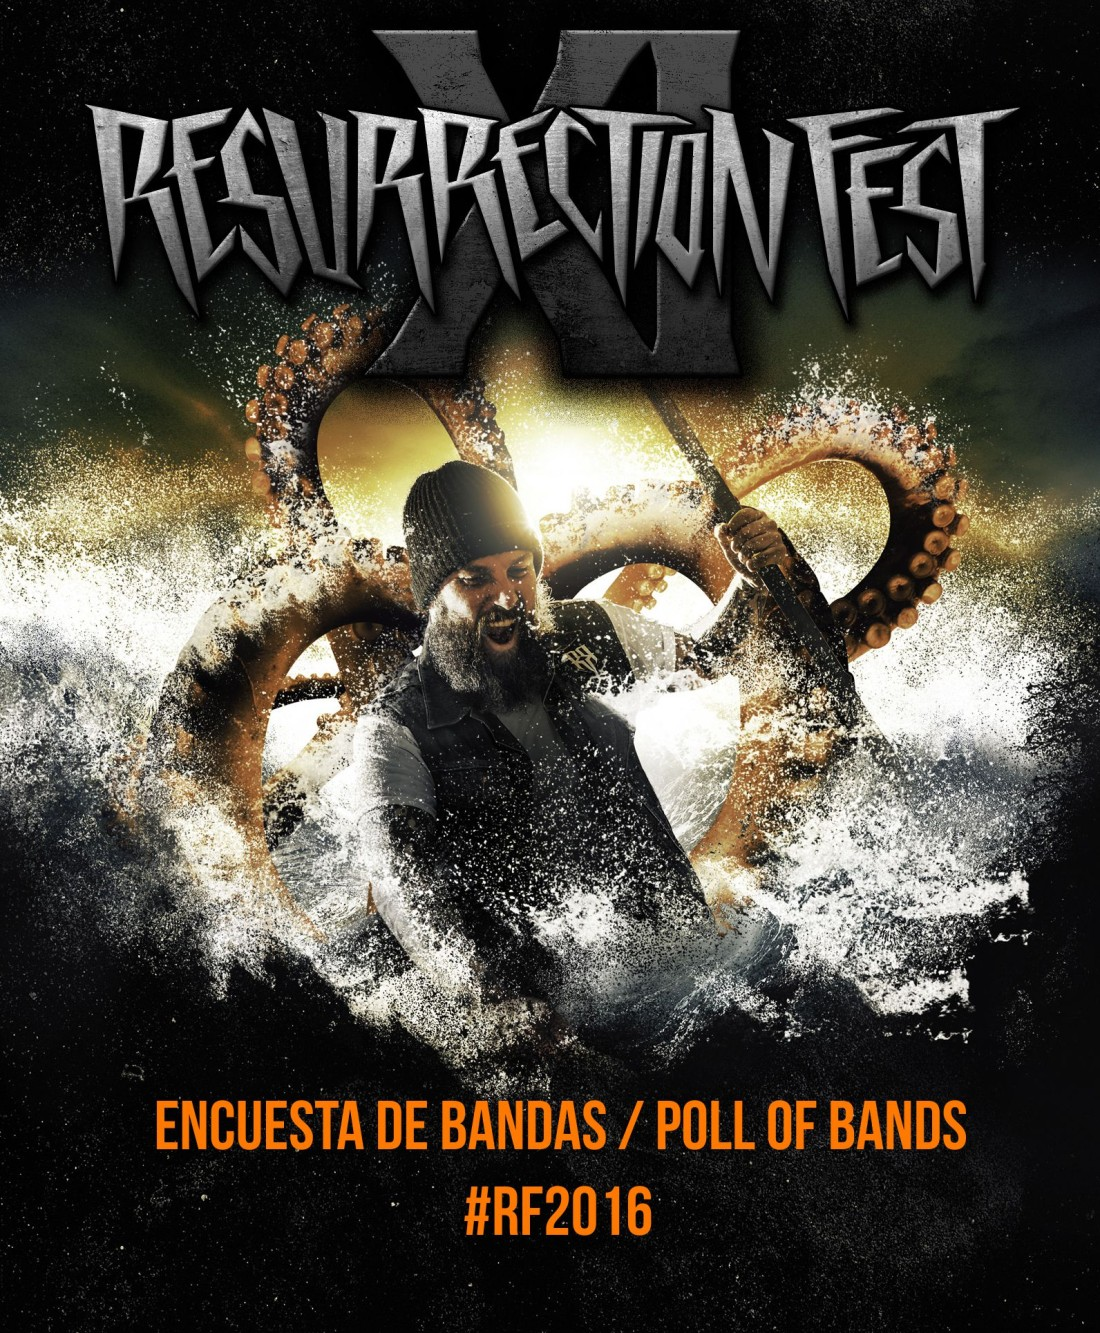 Resurrection-Fest-2016-Encuesta-de-bandas-Poll-of-Bands-1100x1333